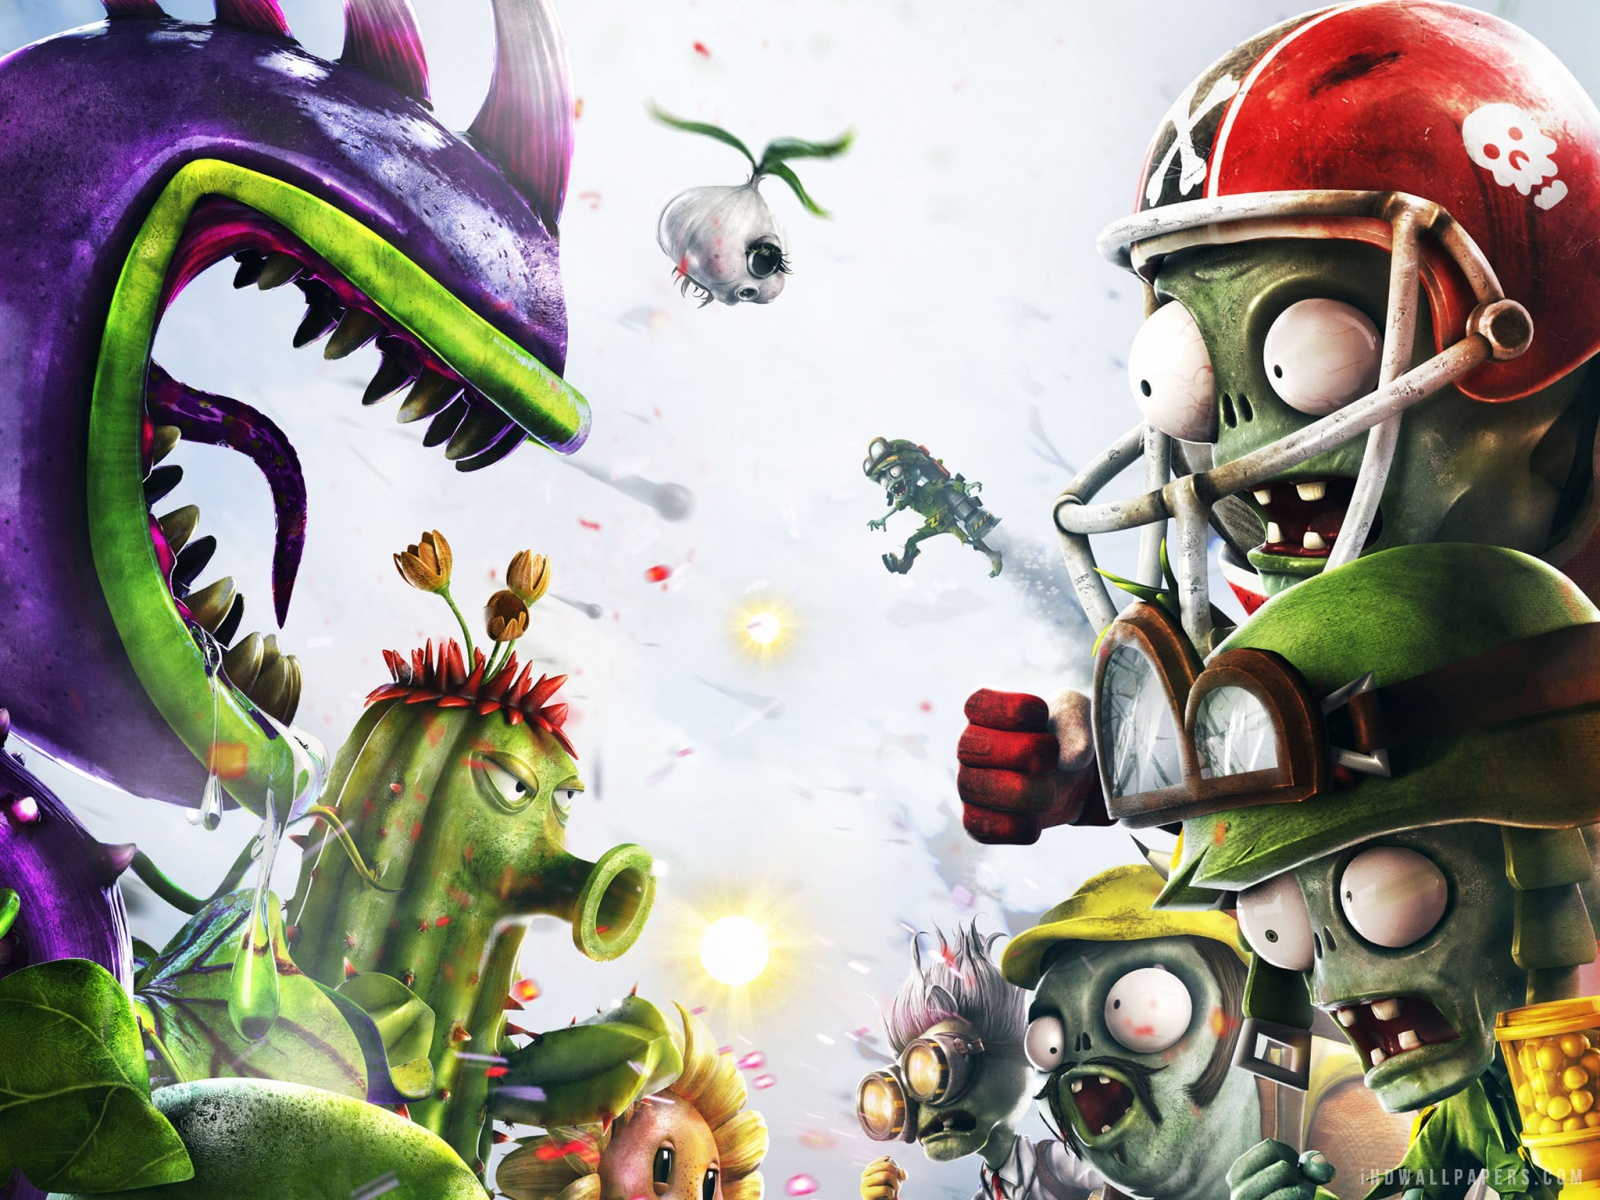 pvz garden warfare wallpapers - wallpapersafari